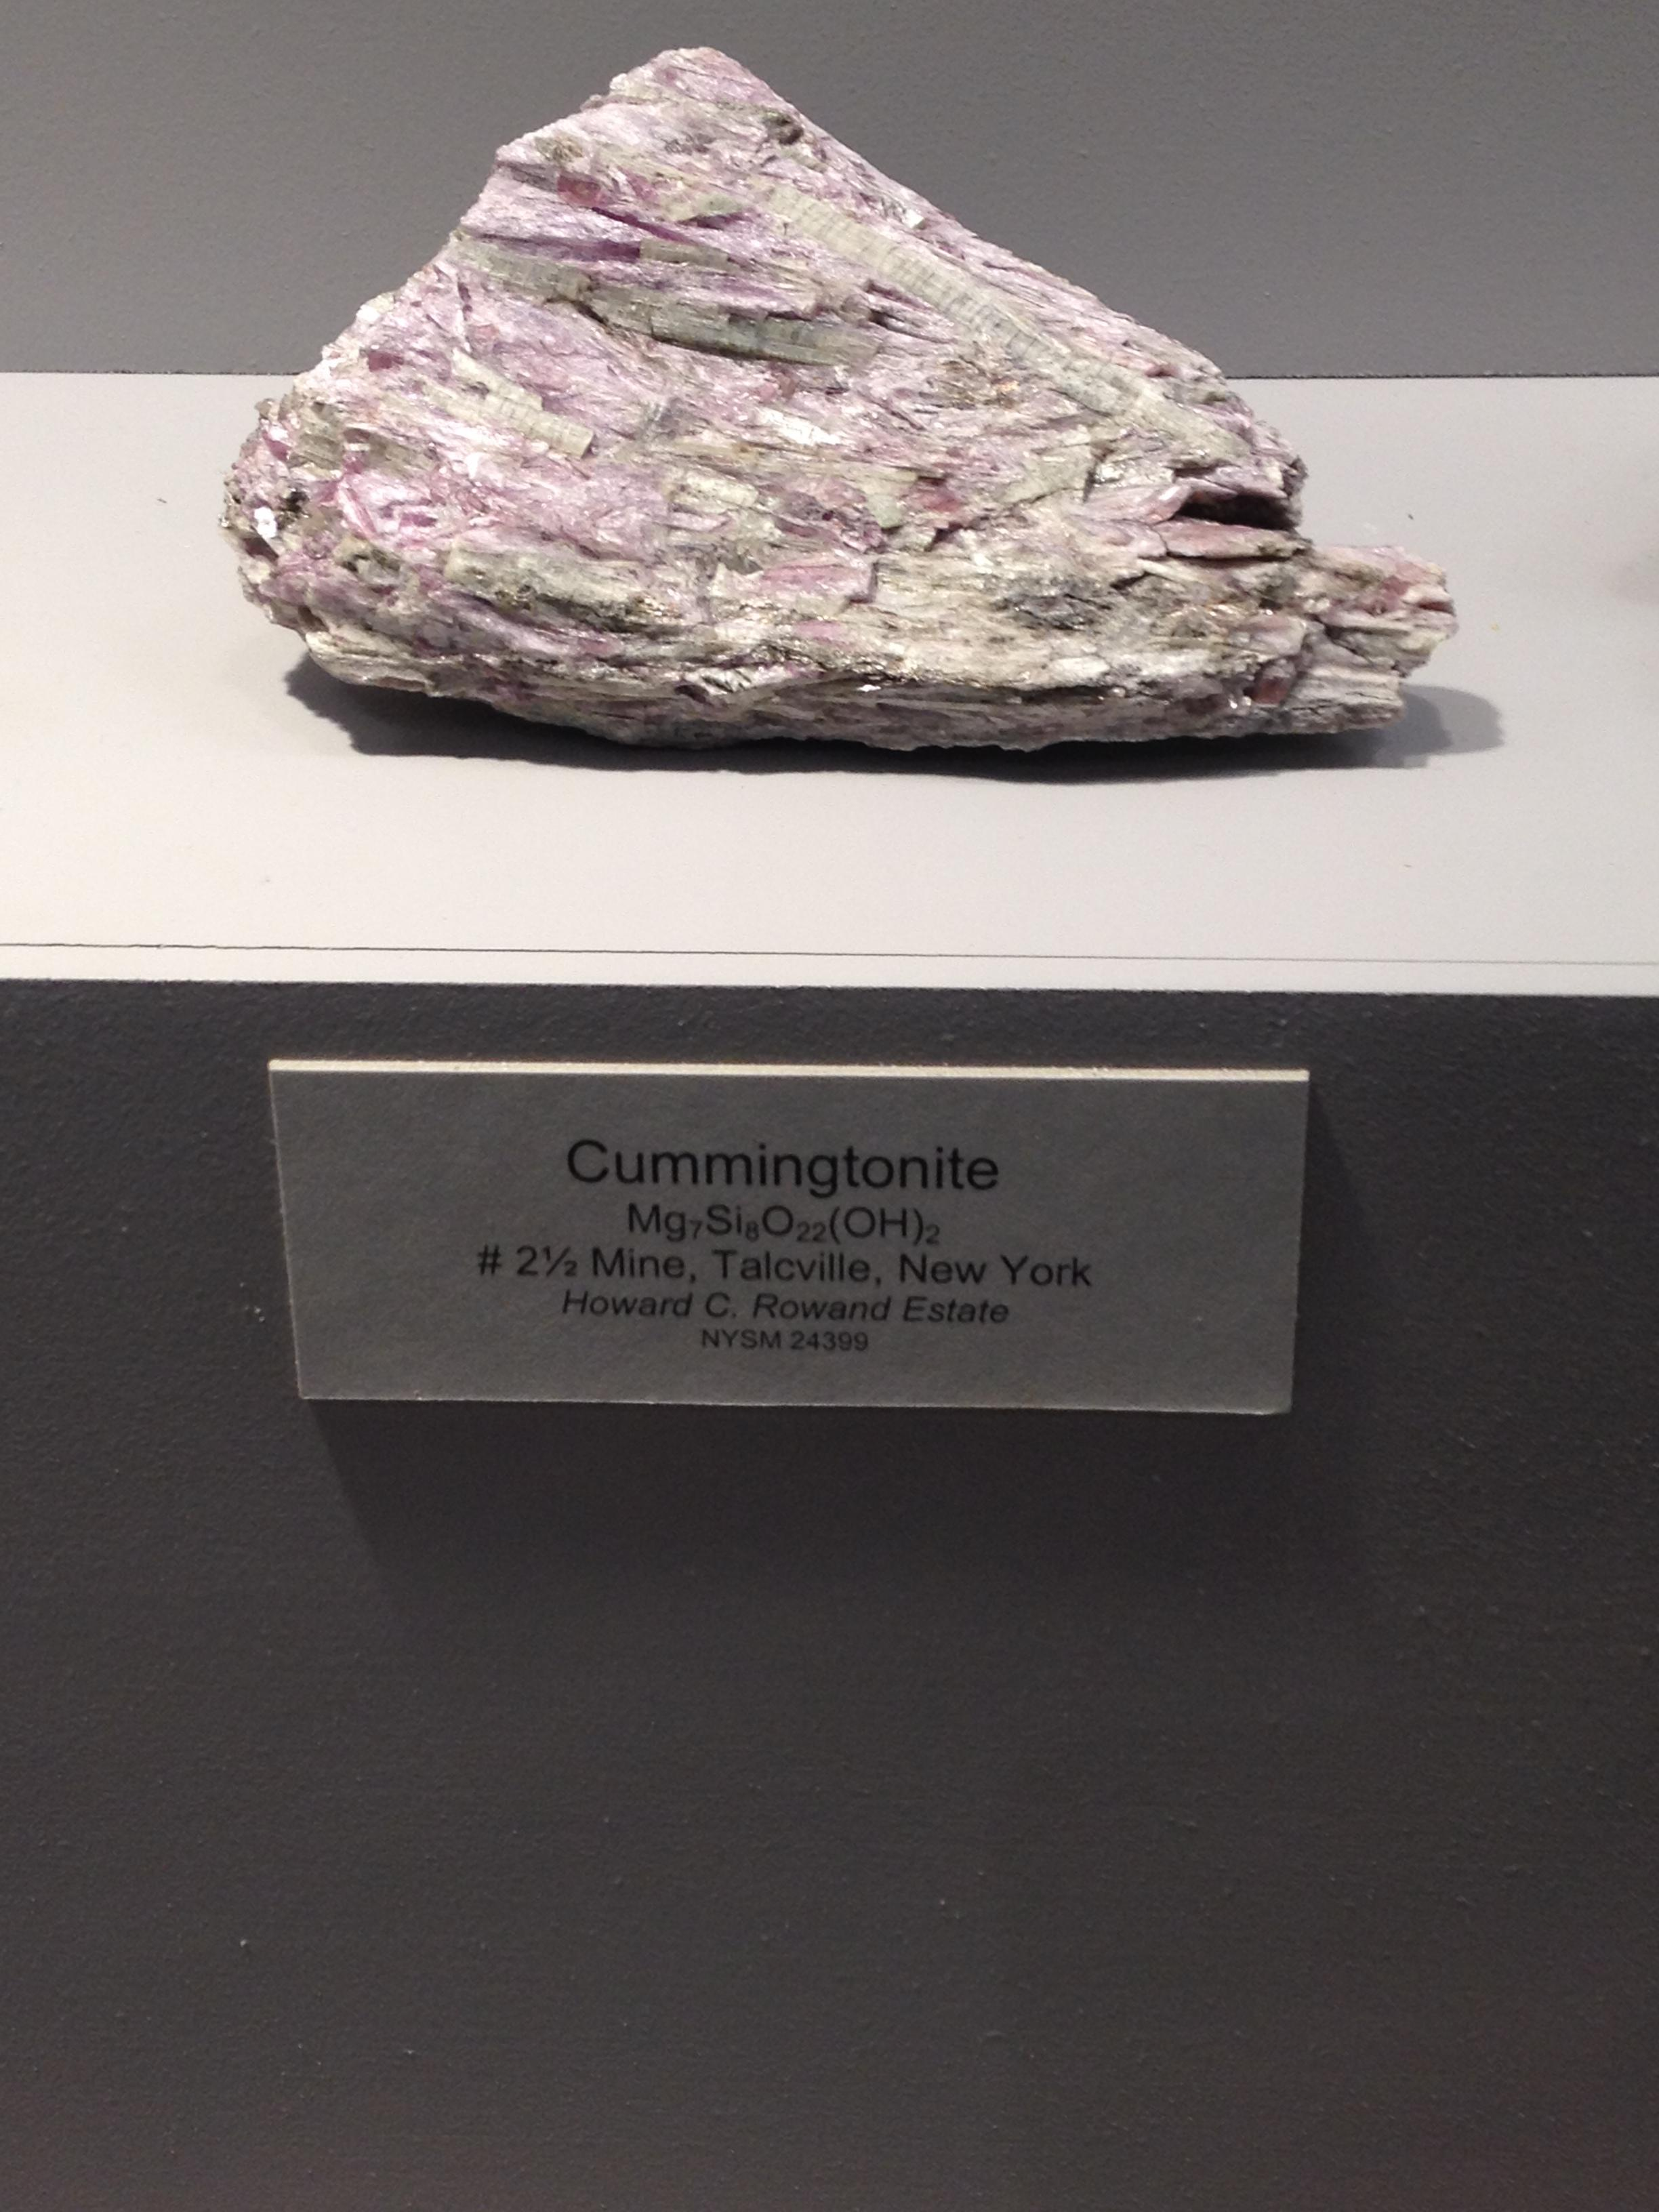 Cummingtonite